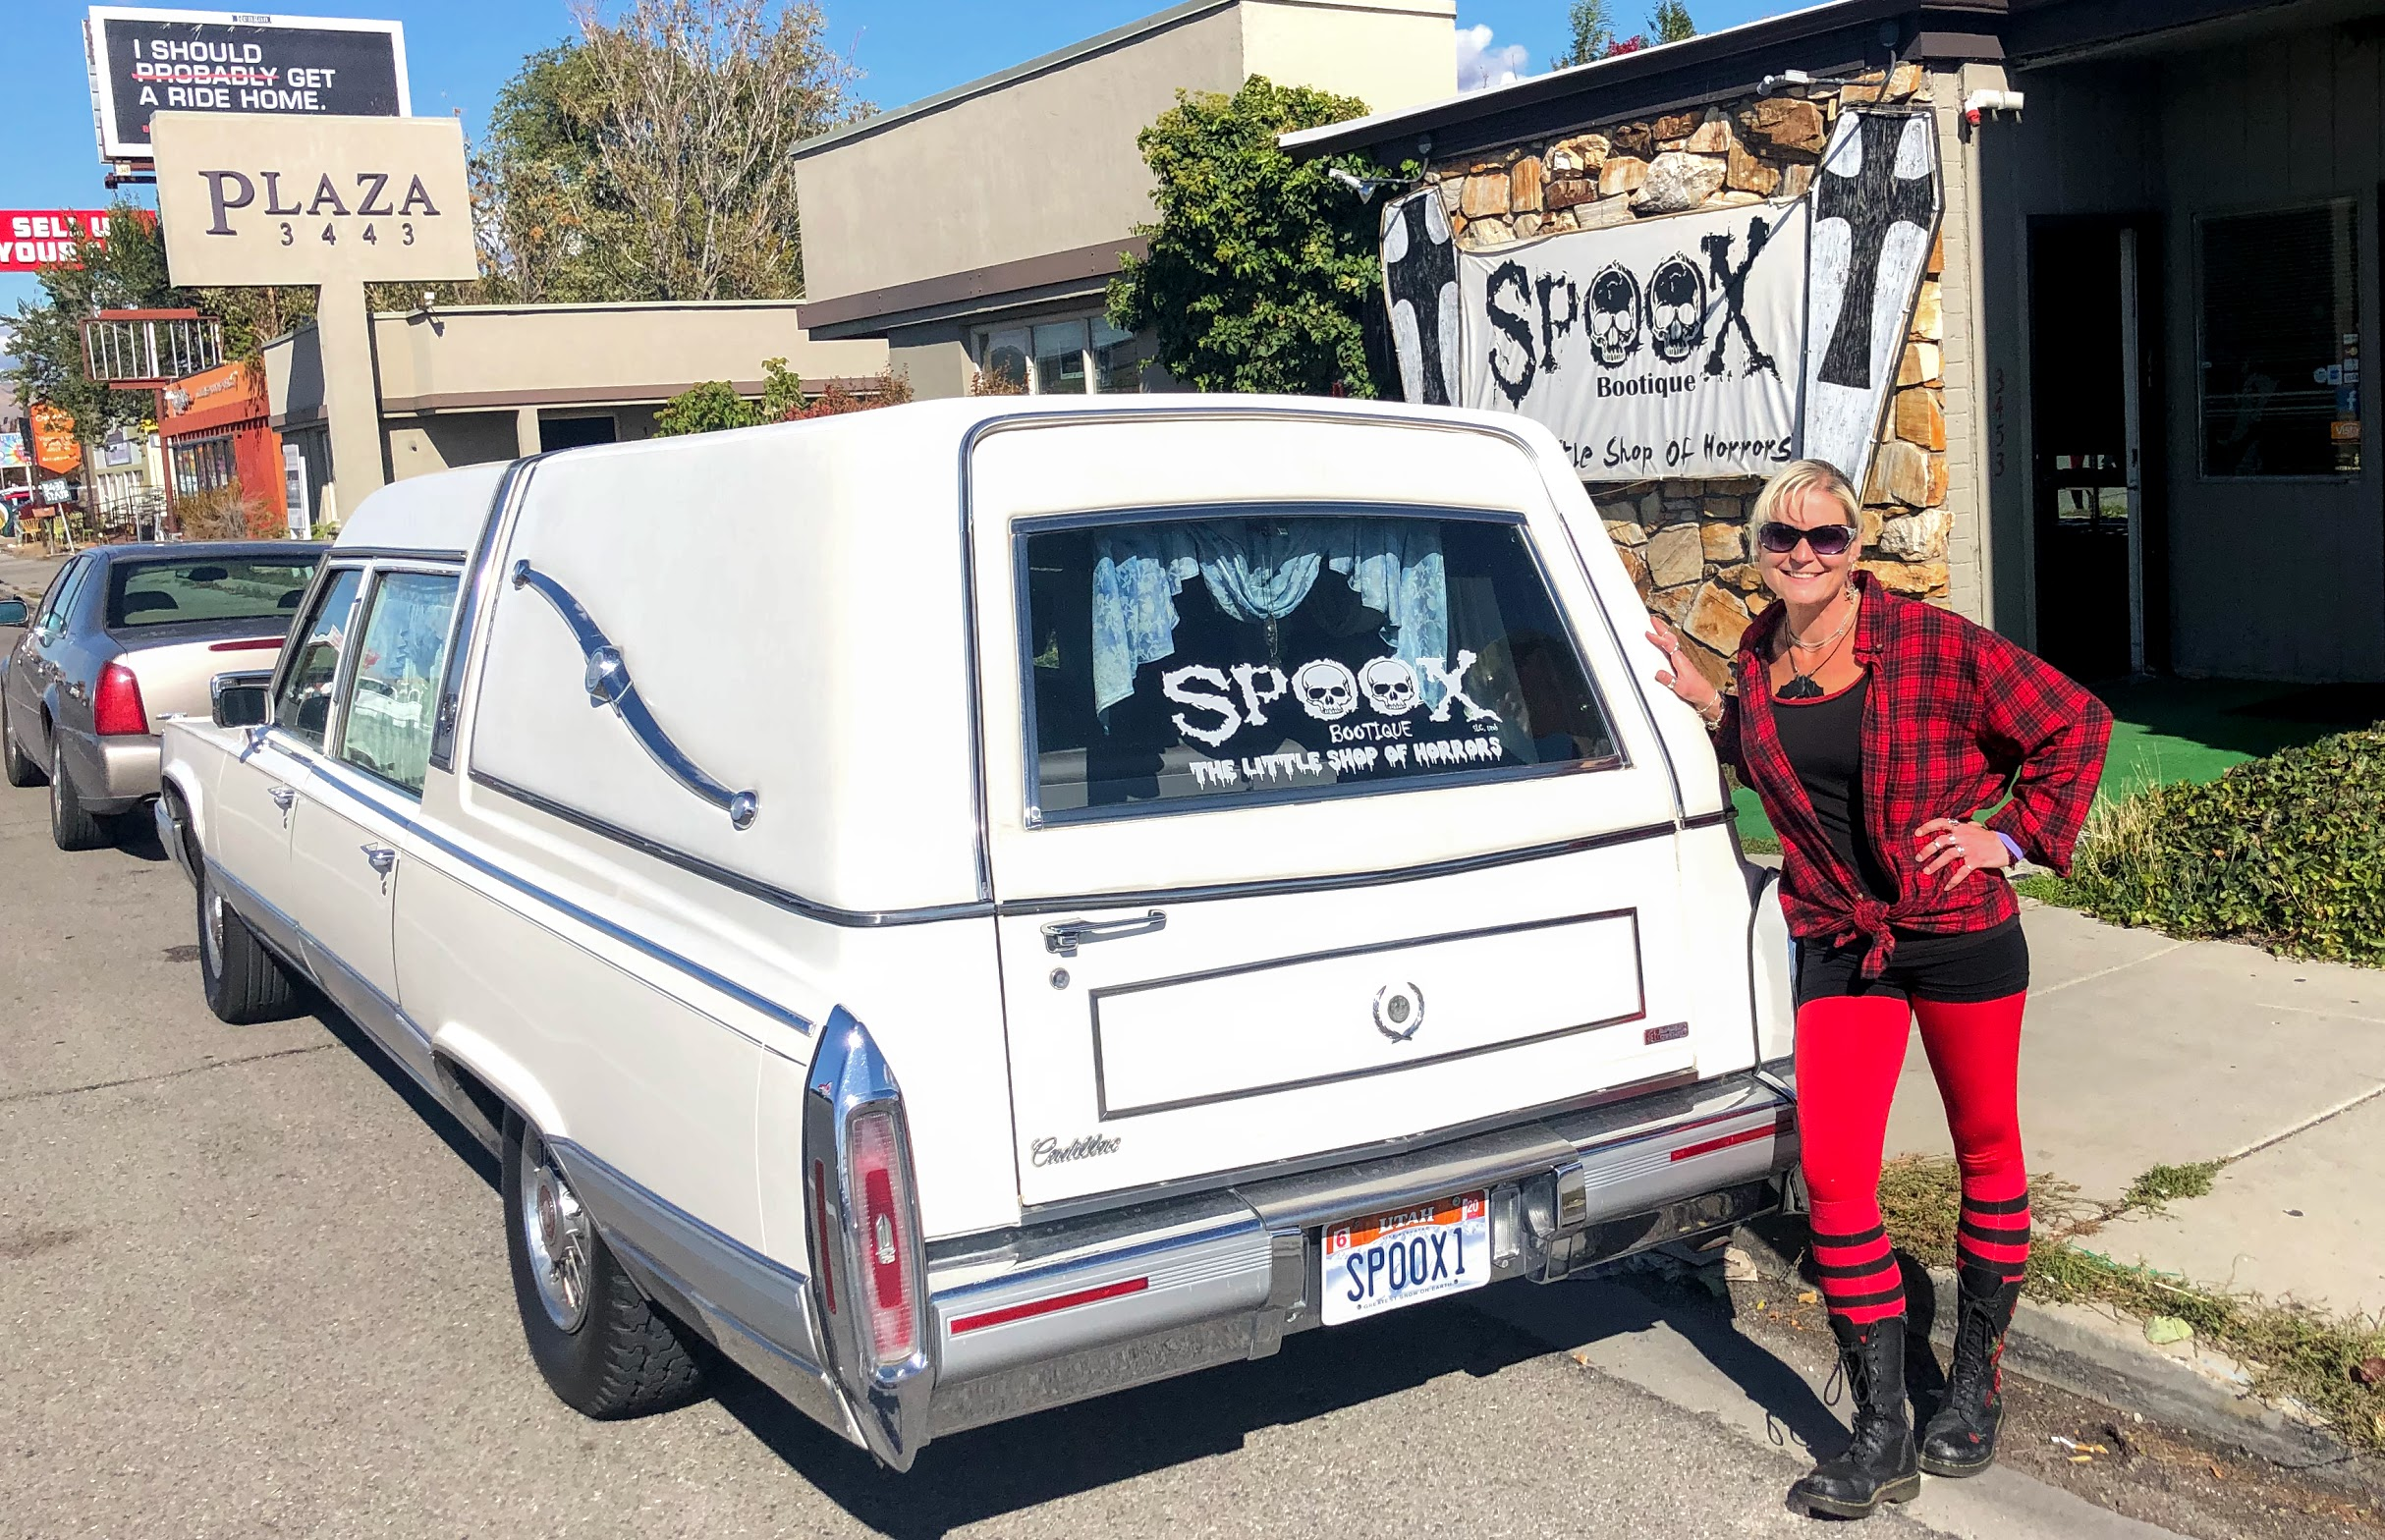 Spoox owner Landrie Miller poses with her hearse outside her store, Spoox Boutique, in South Salt Lake.